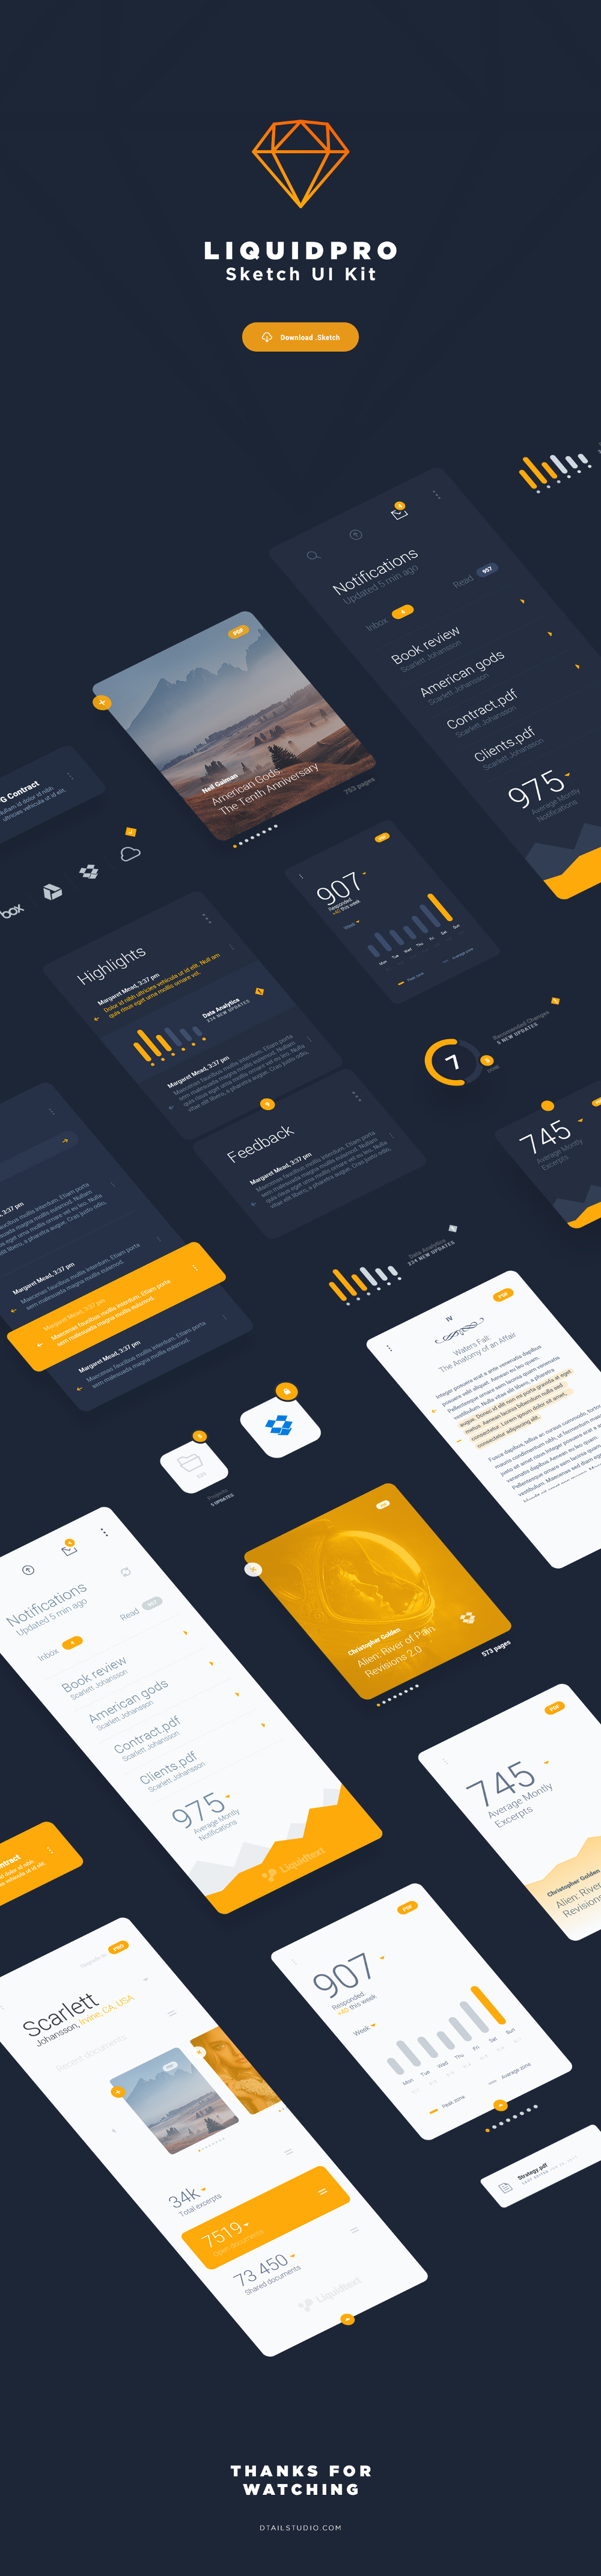 Free LiquidPro UI Kit for Sketch